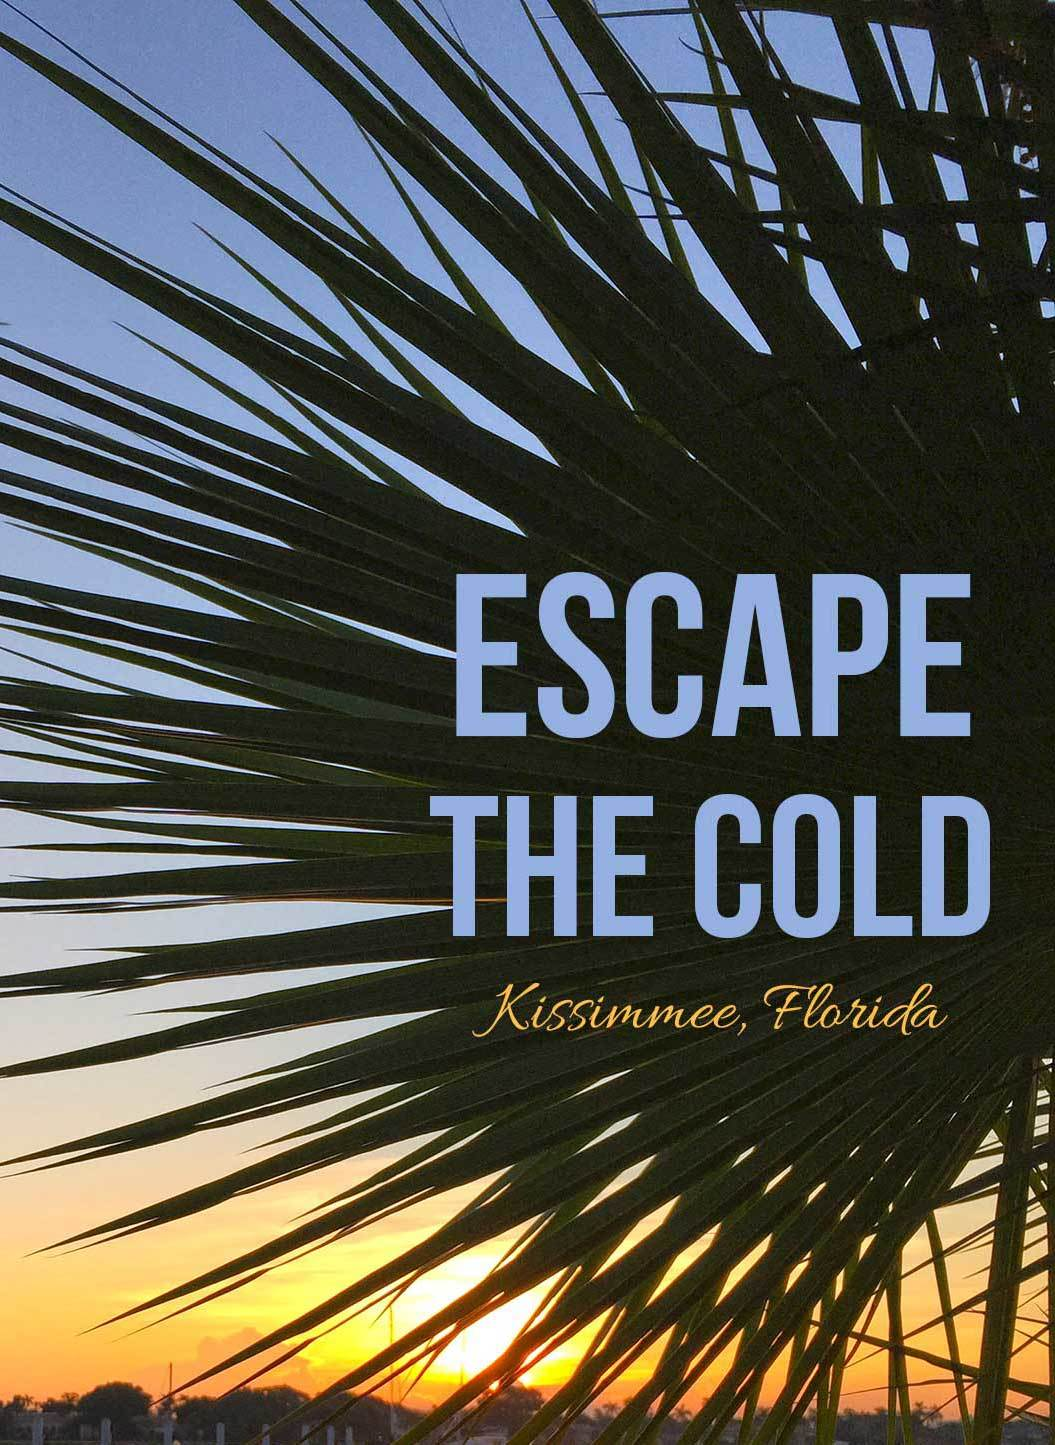 Escape the cold - head to Kissimmee, Florida and enter to win a free trip at https://ooh.li/44422ce